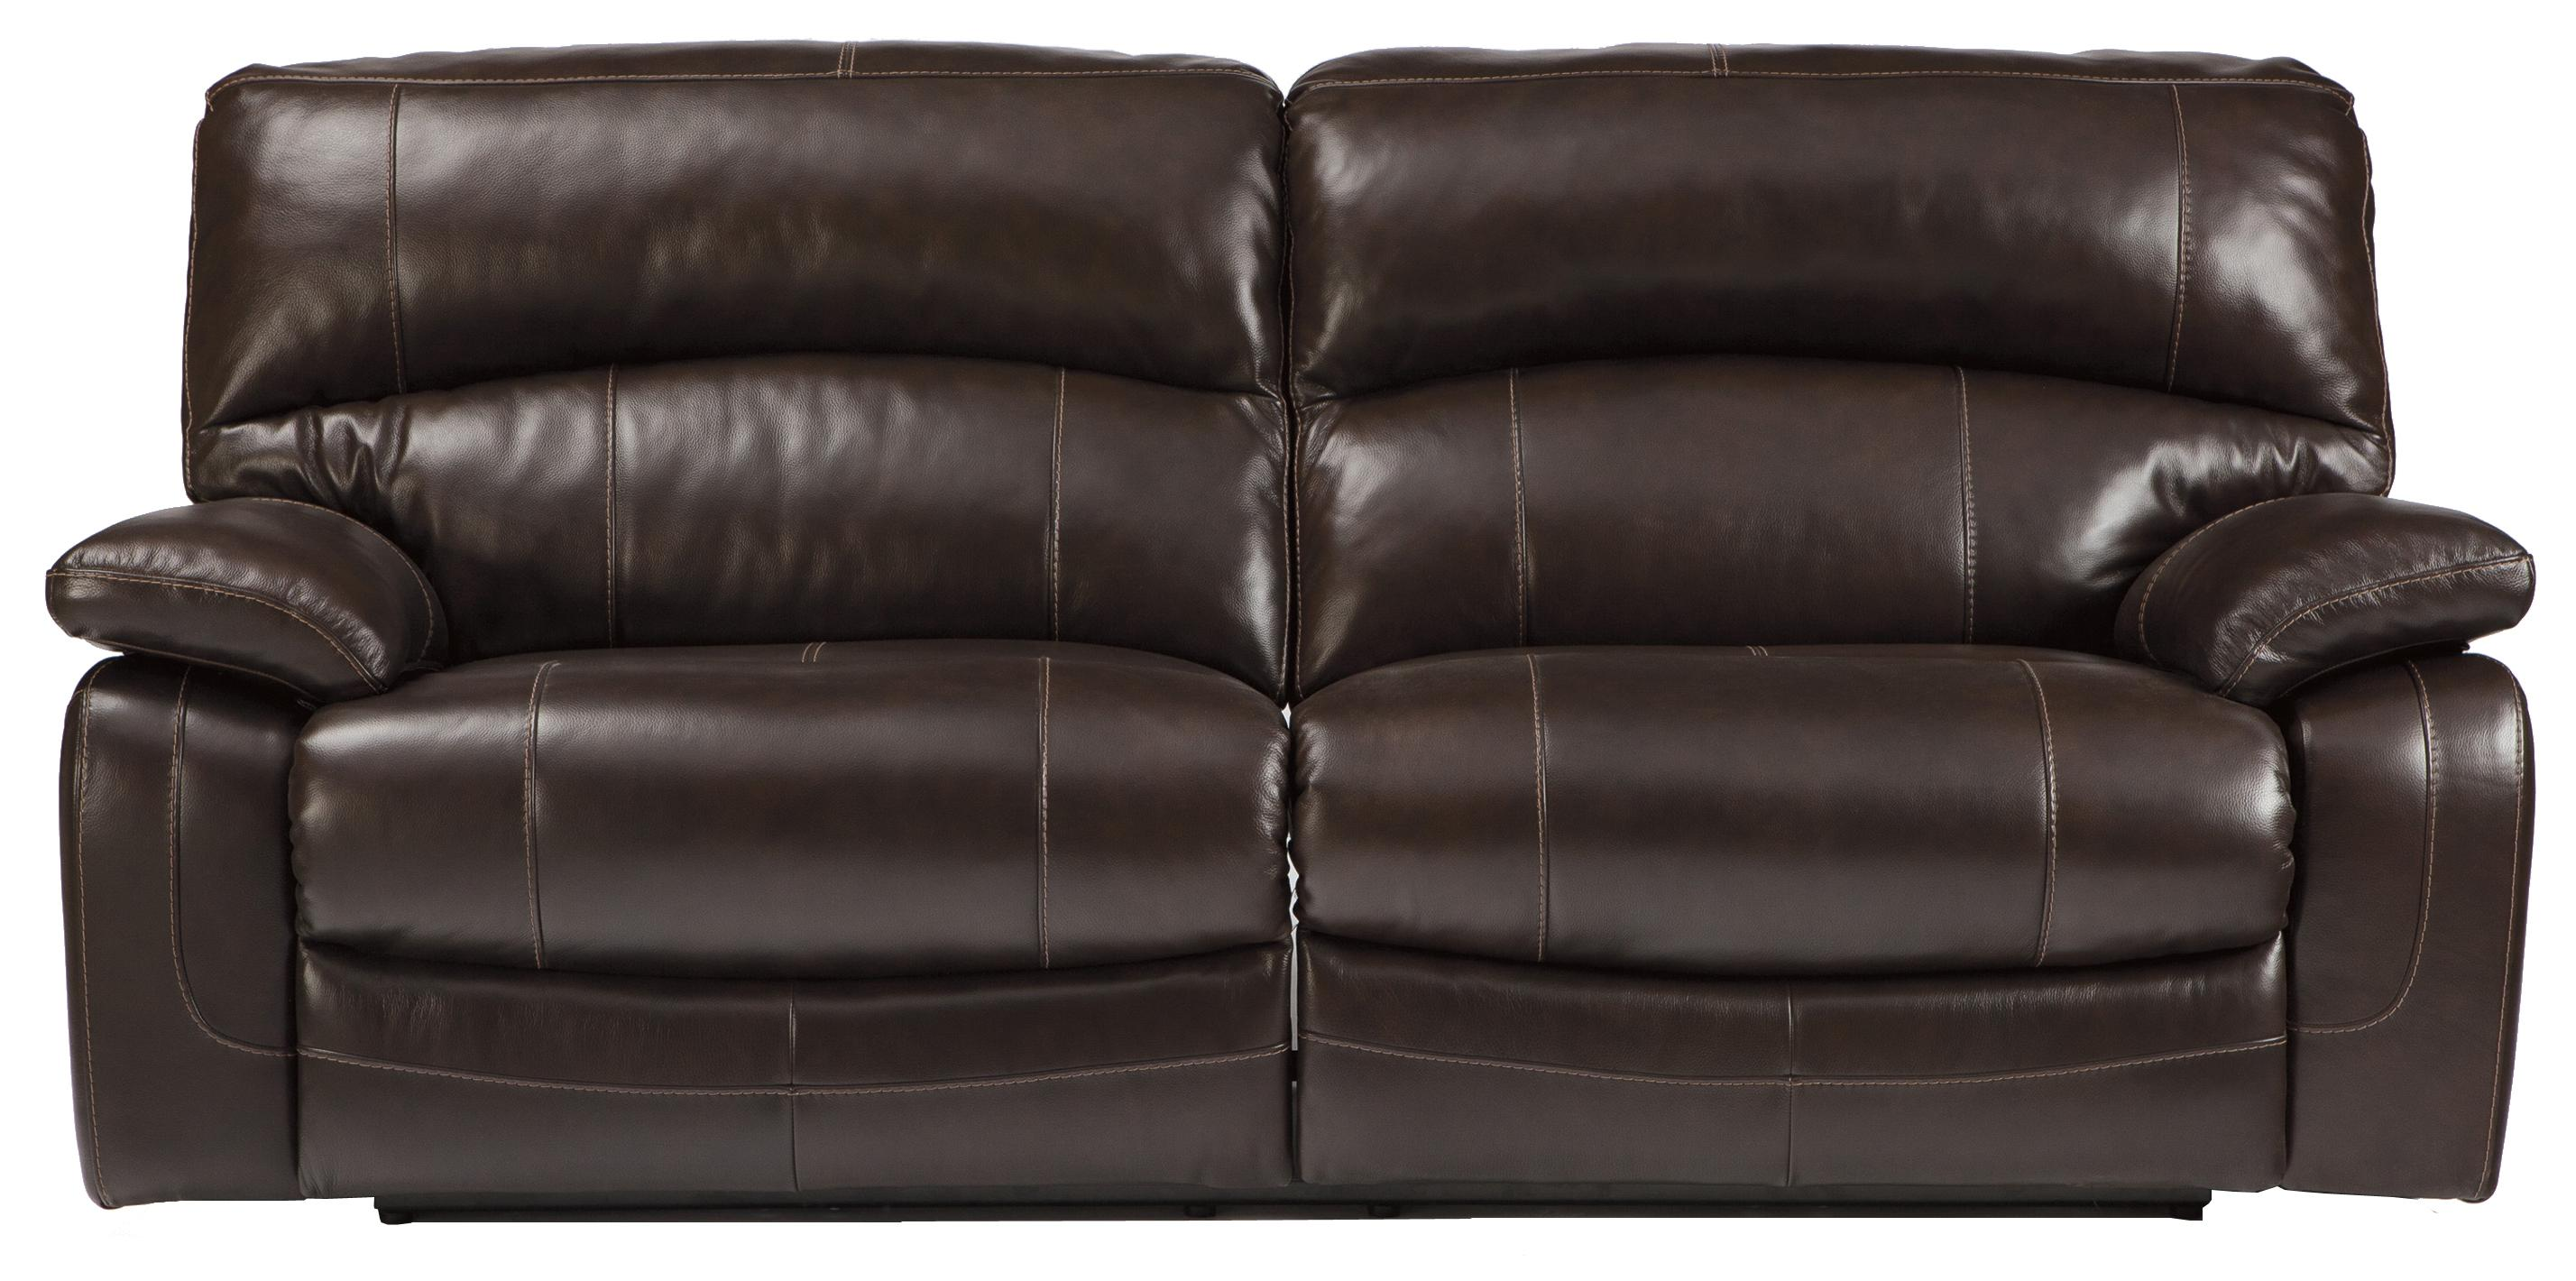 Signature Design by Ashley Damacio - Dark Brown 2 Seat Reclining Sofa - Item Number: U9820081